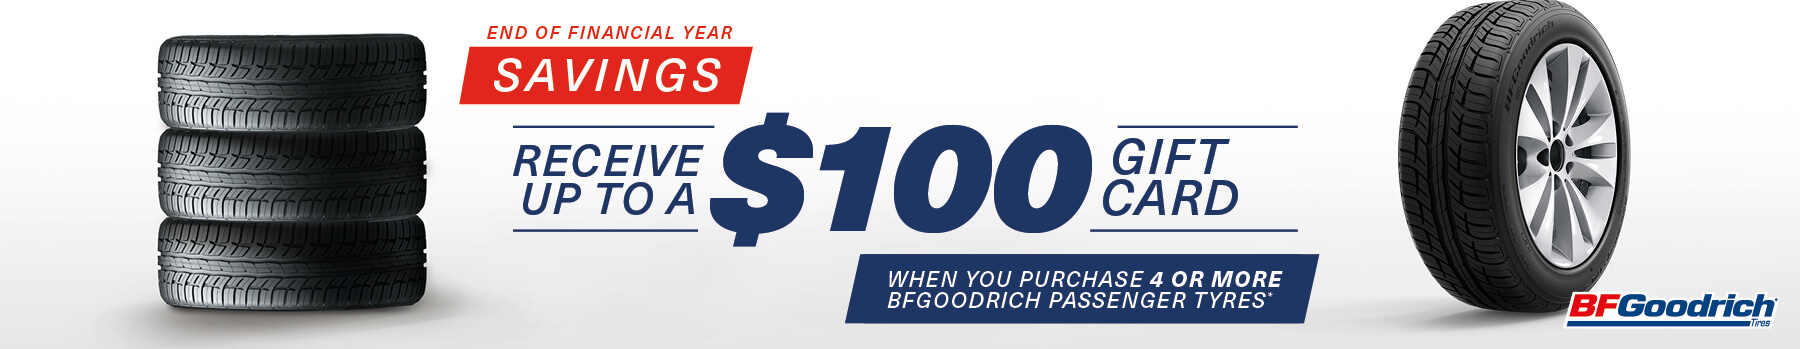 Receive up to a $100 gift card when you purchase 4 or more BFGoodrich passenger tyres